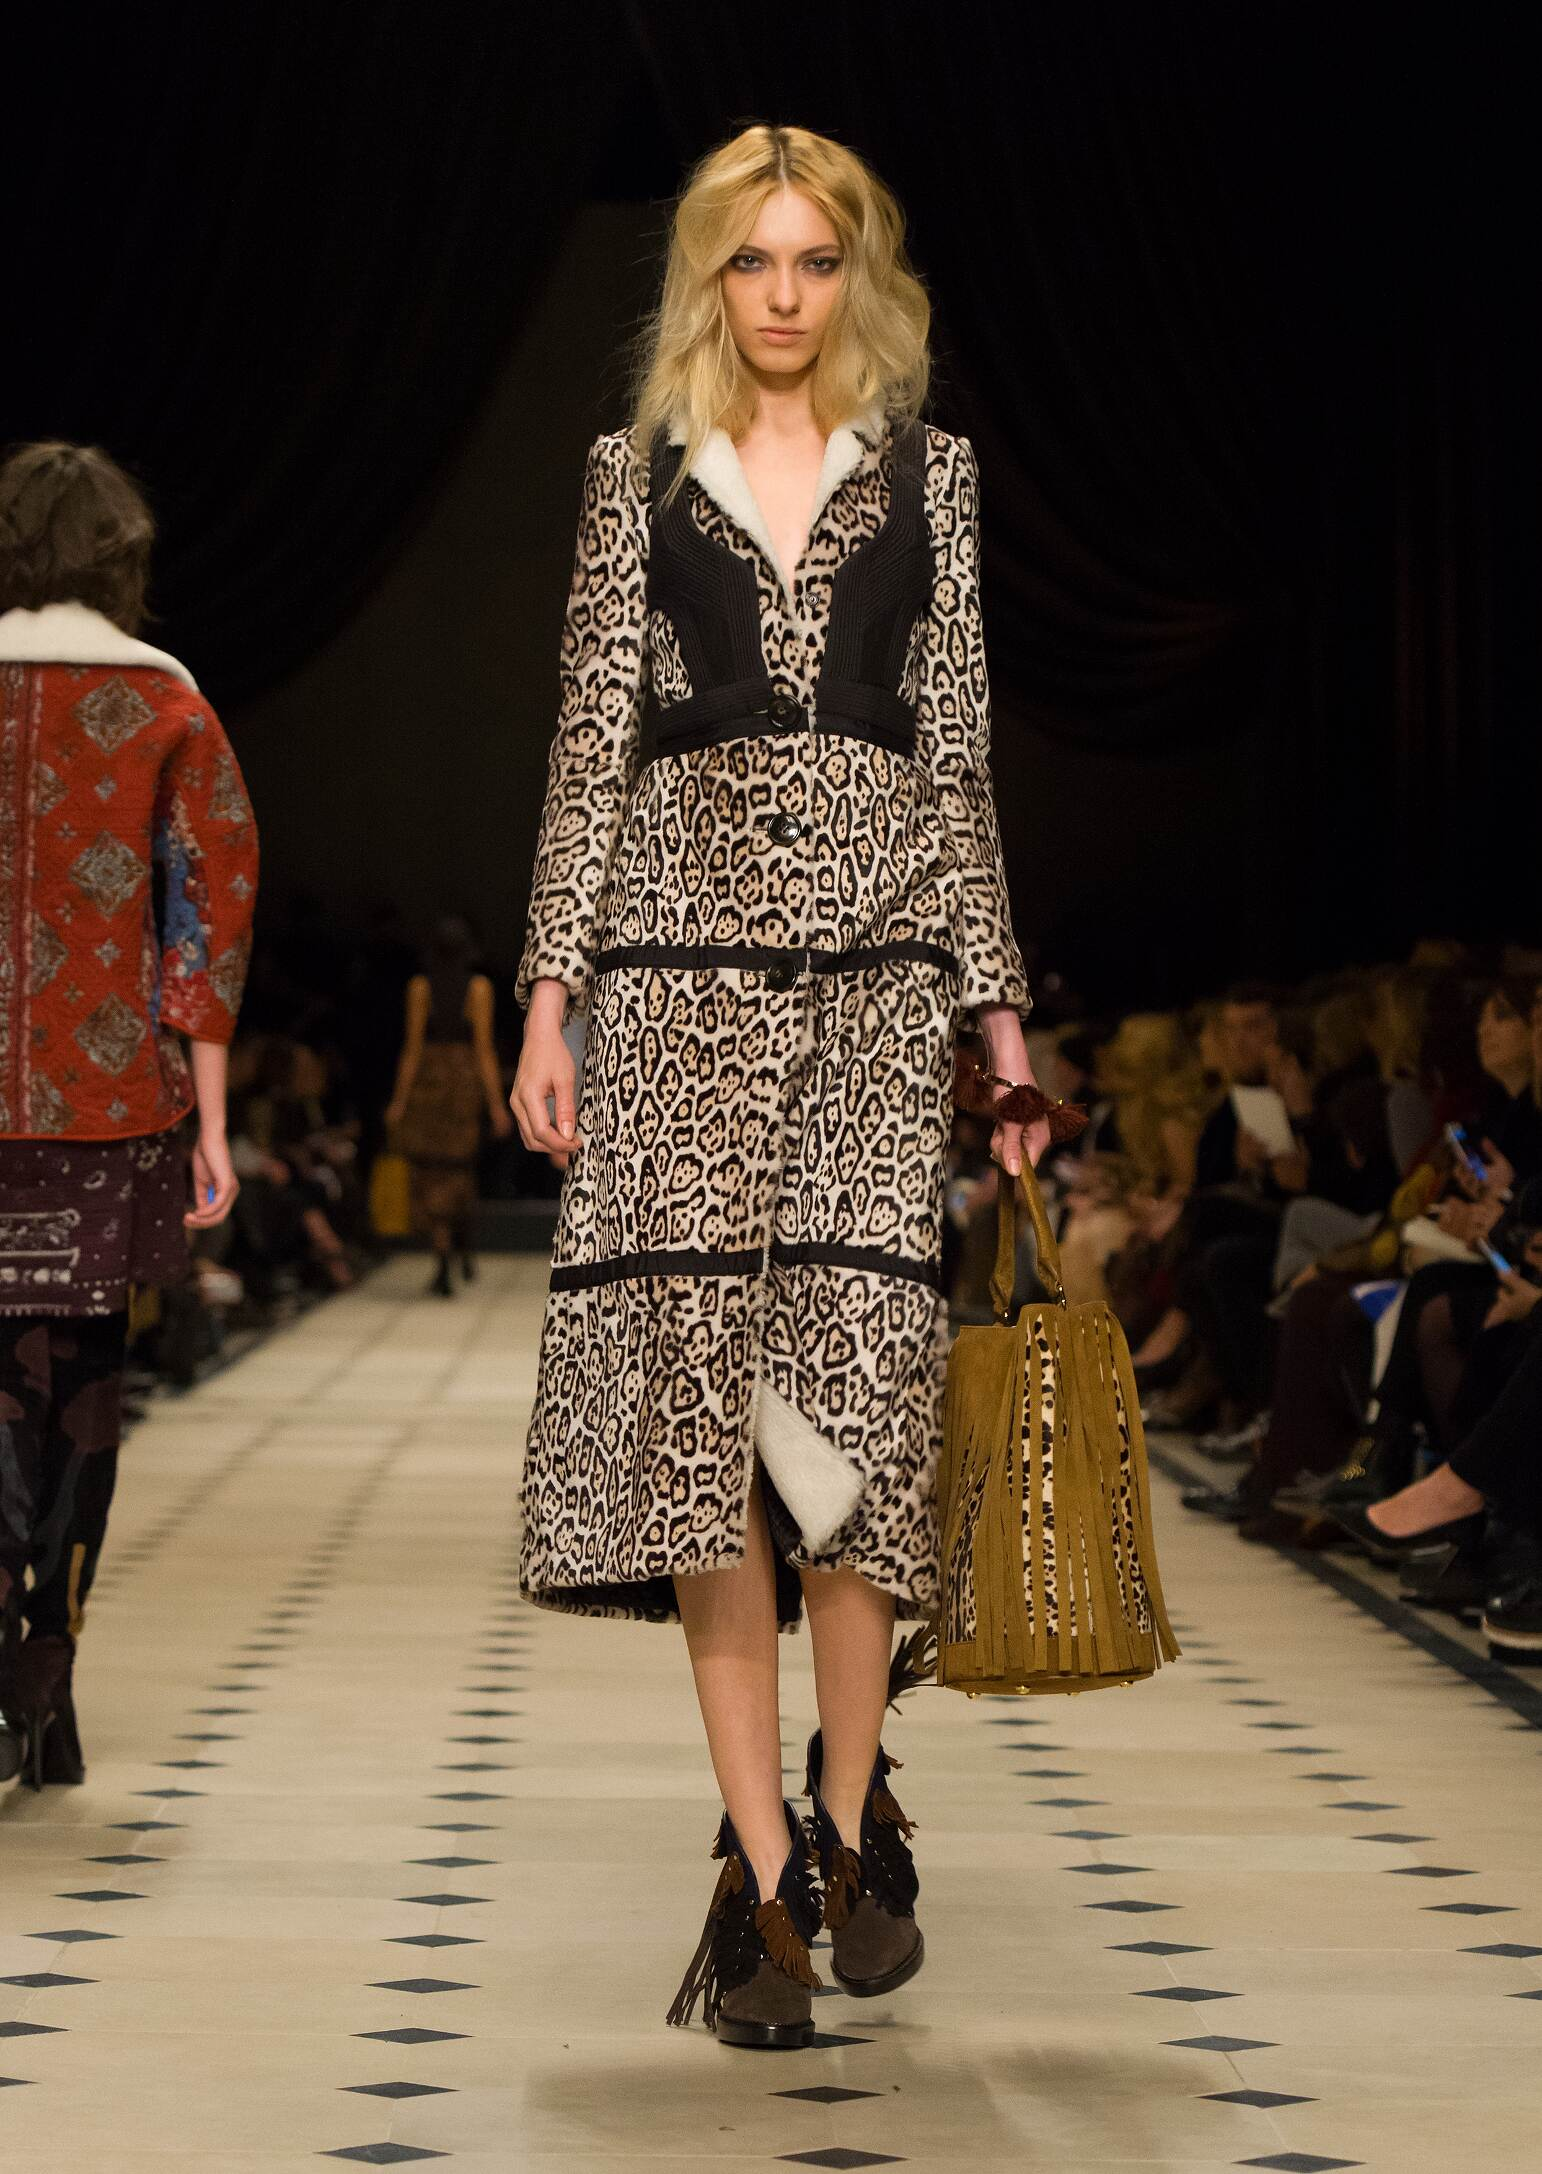 Fall Burberry Prorsum Collection Fashion Women Model